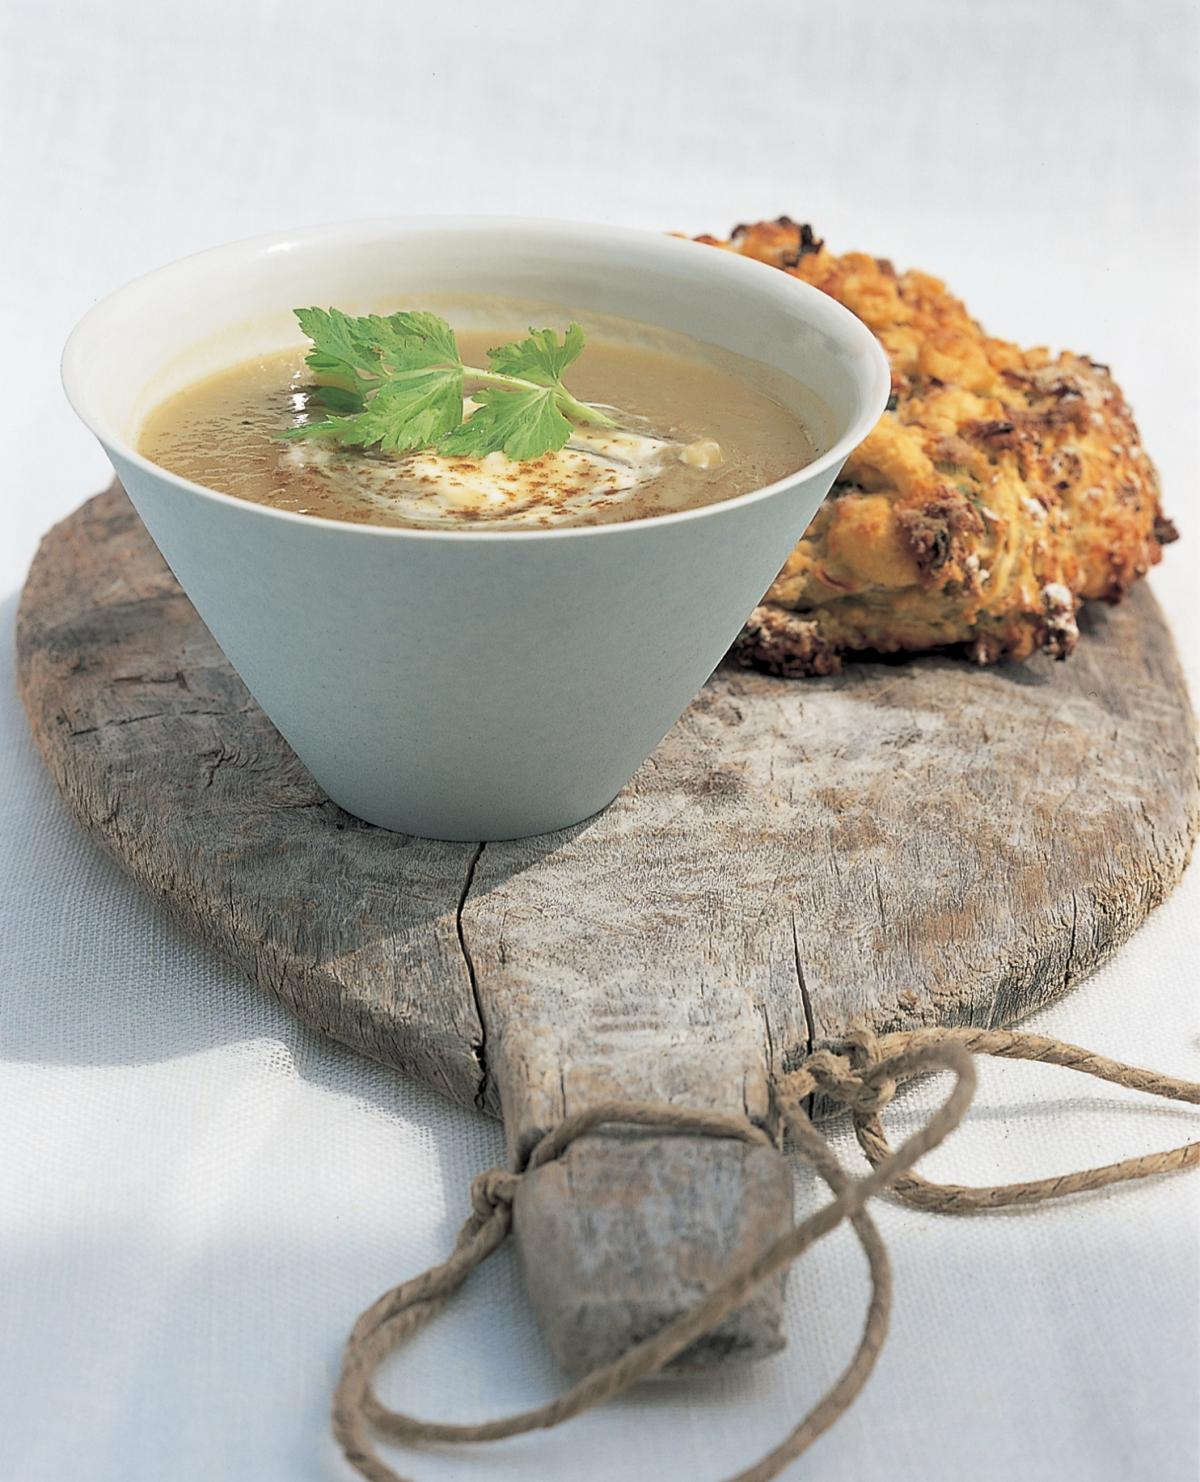 A picture of Delia's Hearty Soups recipes